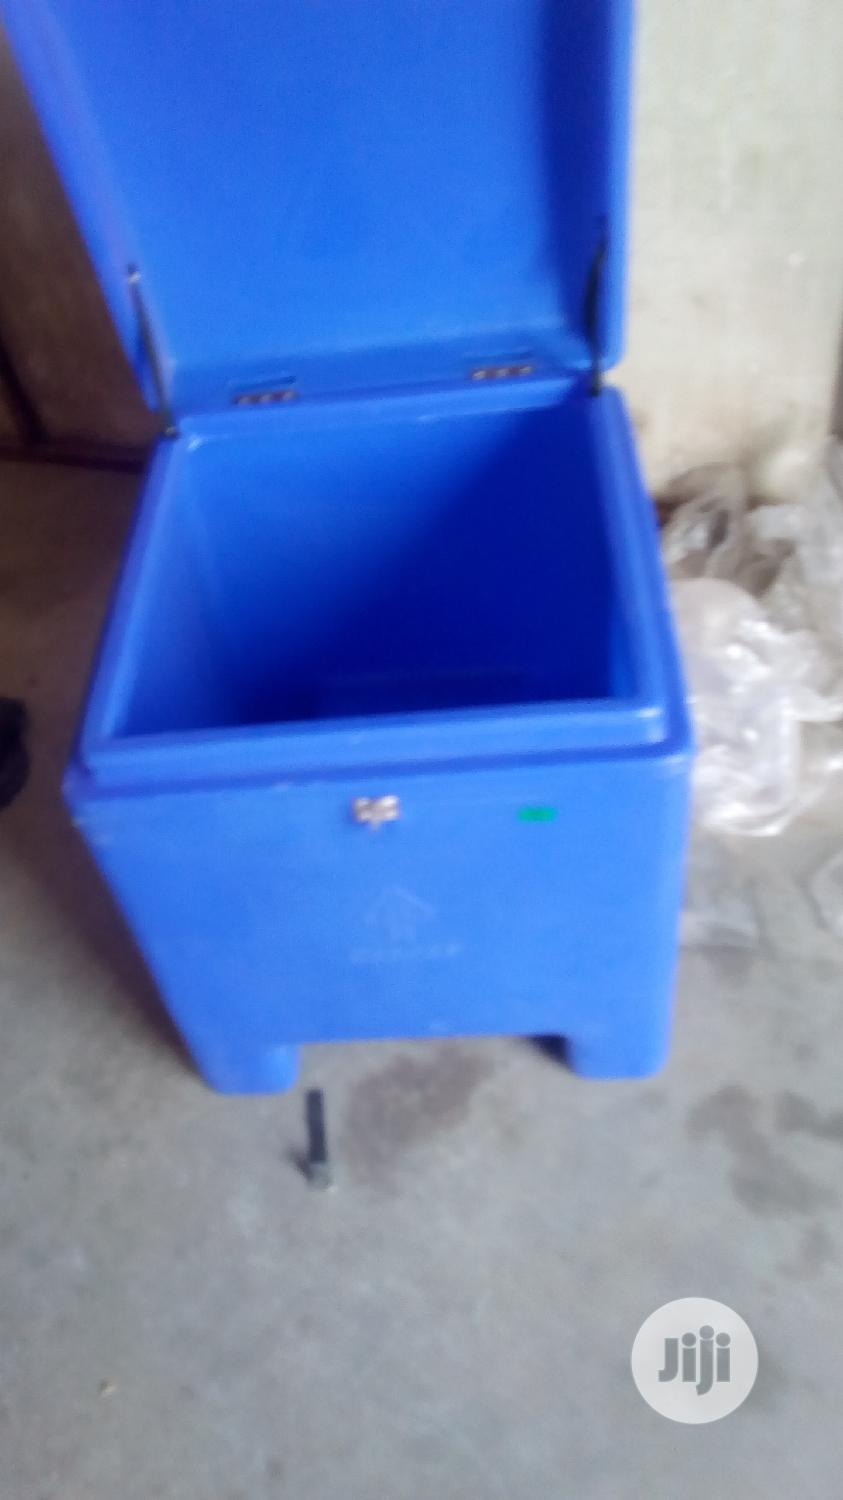 Durable Courier Boxes | Manufacturing Equipment for sale in Central Business Dis, Abuja (FCT) State, Nigeria